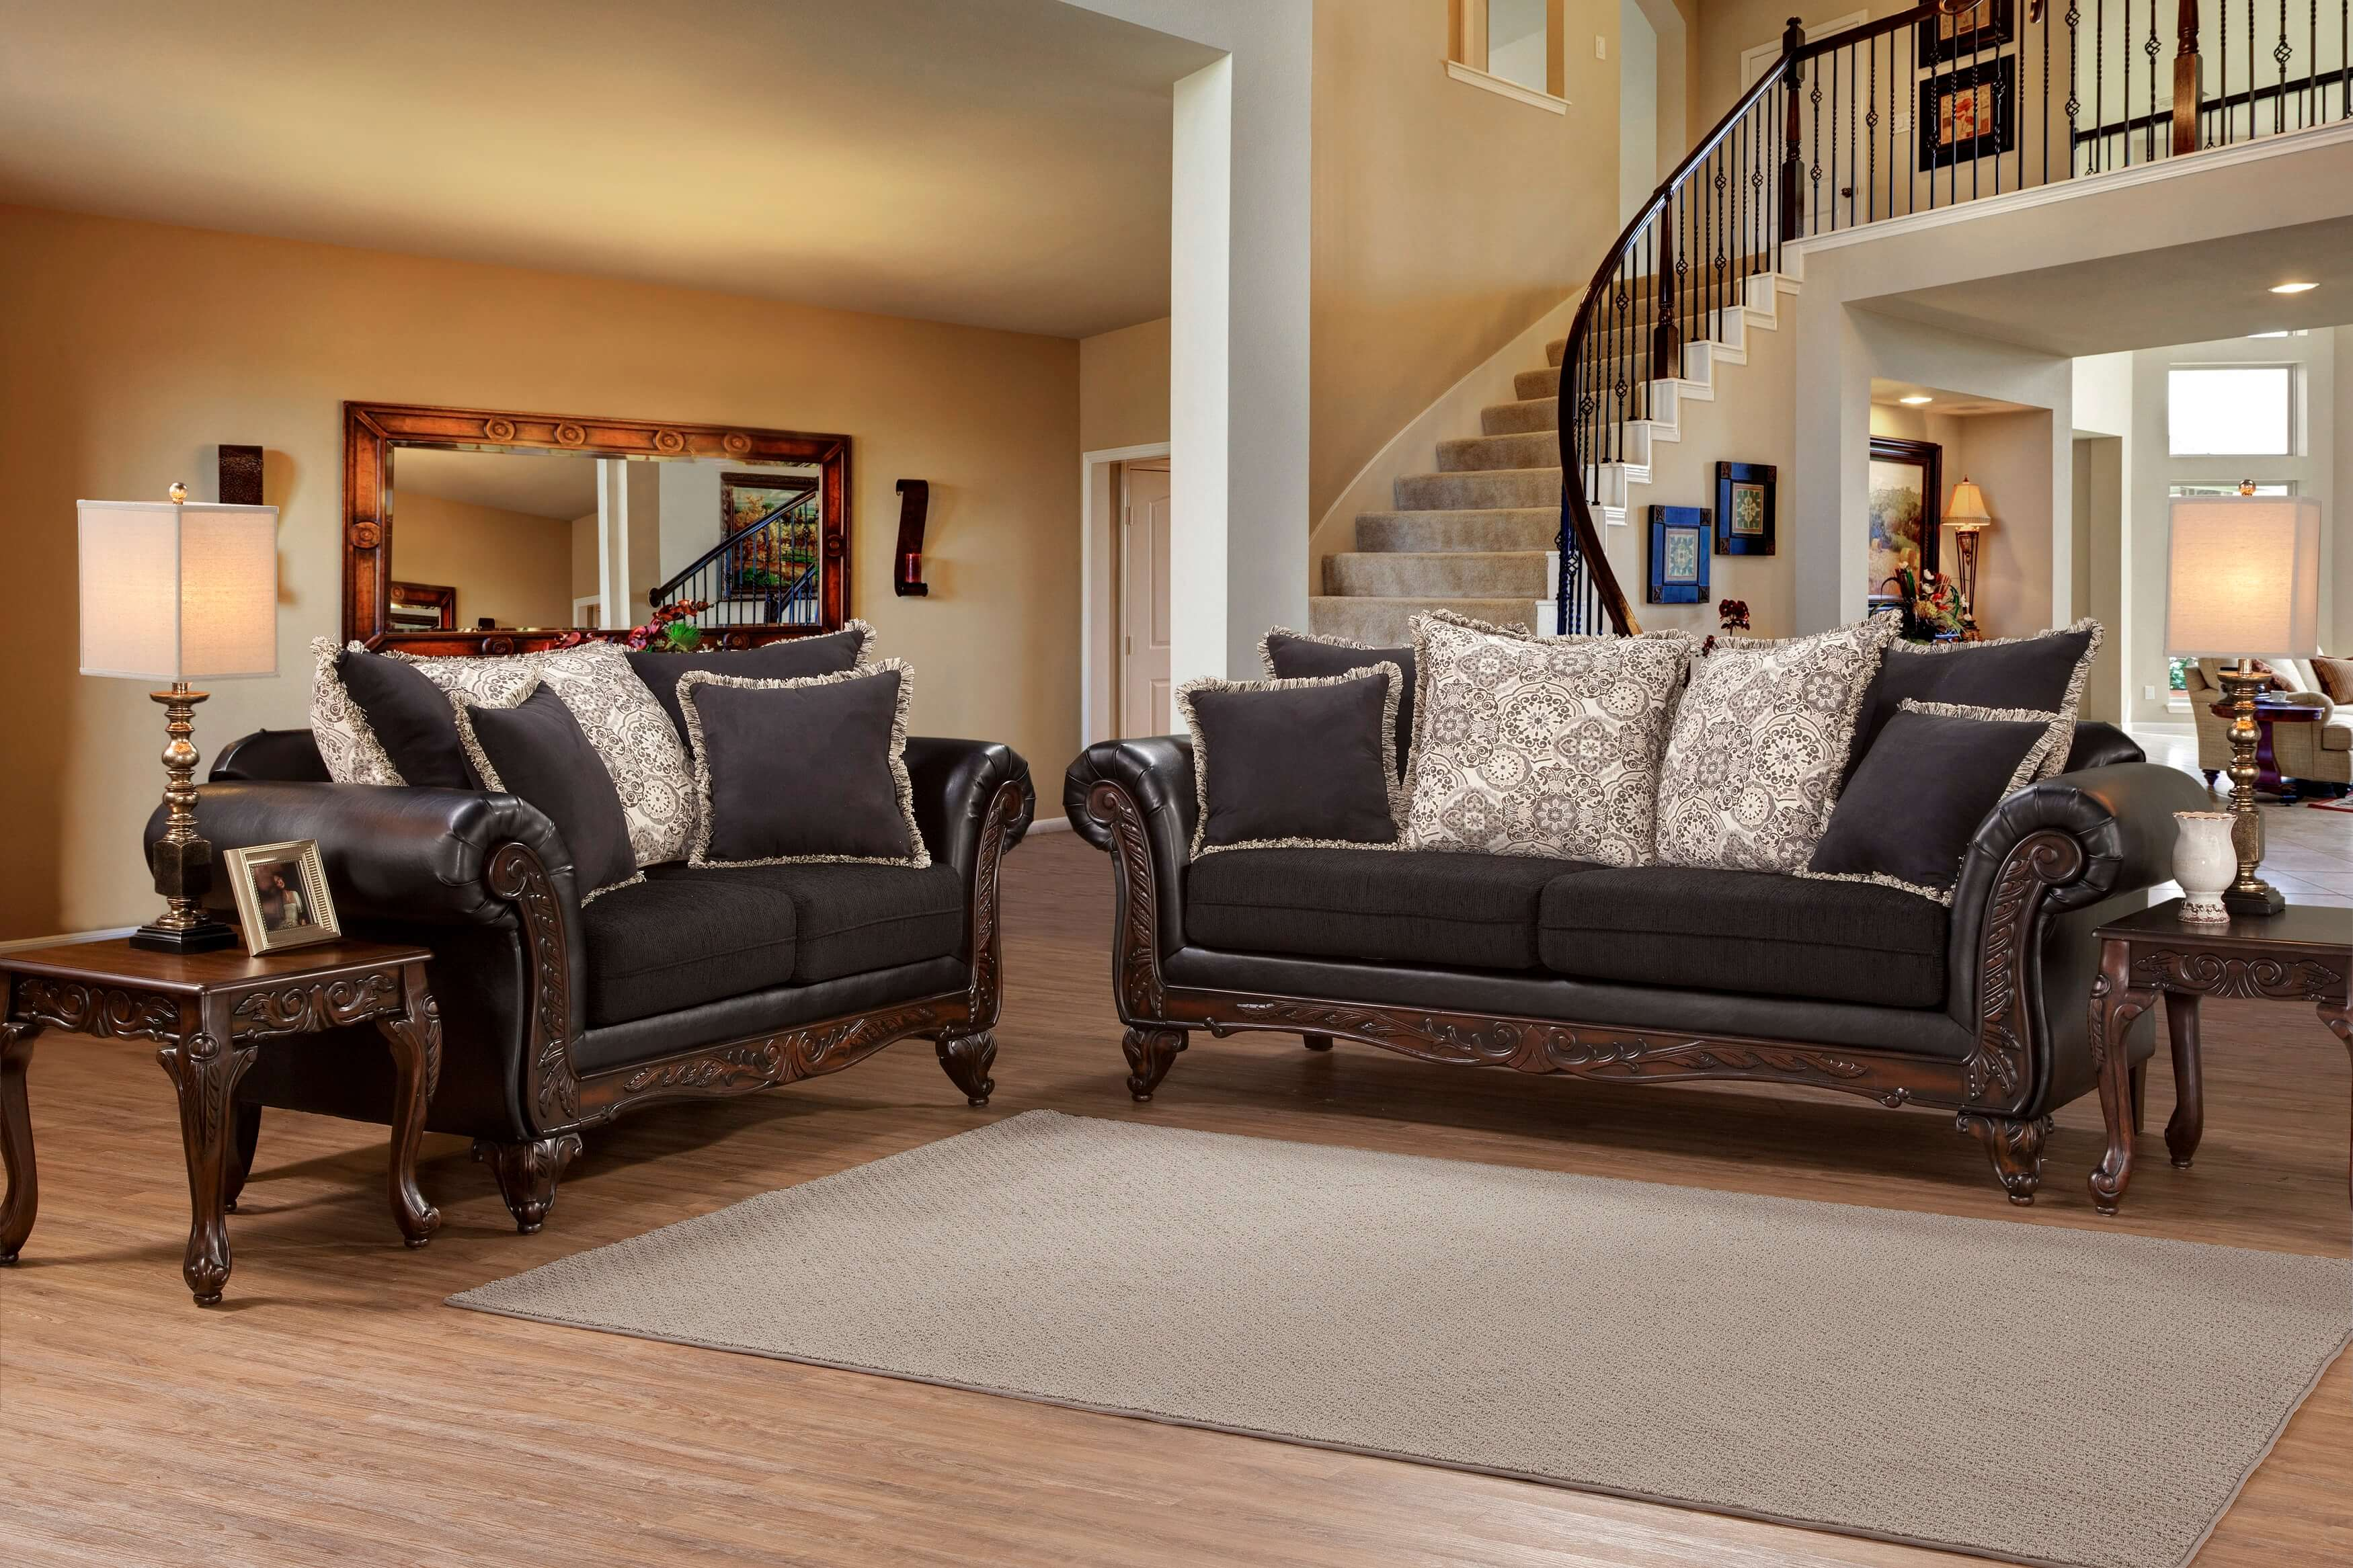 Serta Soprano Ebony Sienna Sofa And Loveseat Living Room